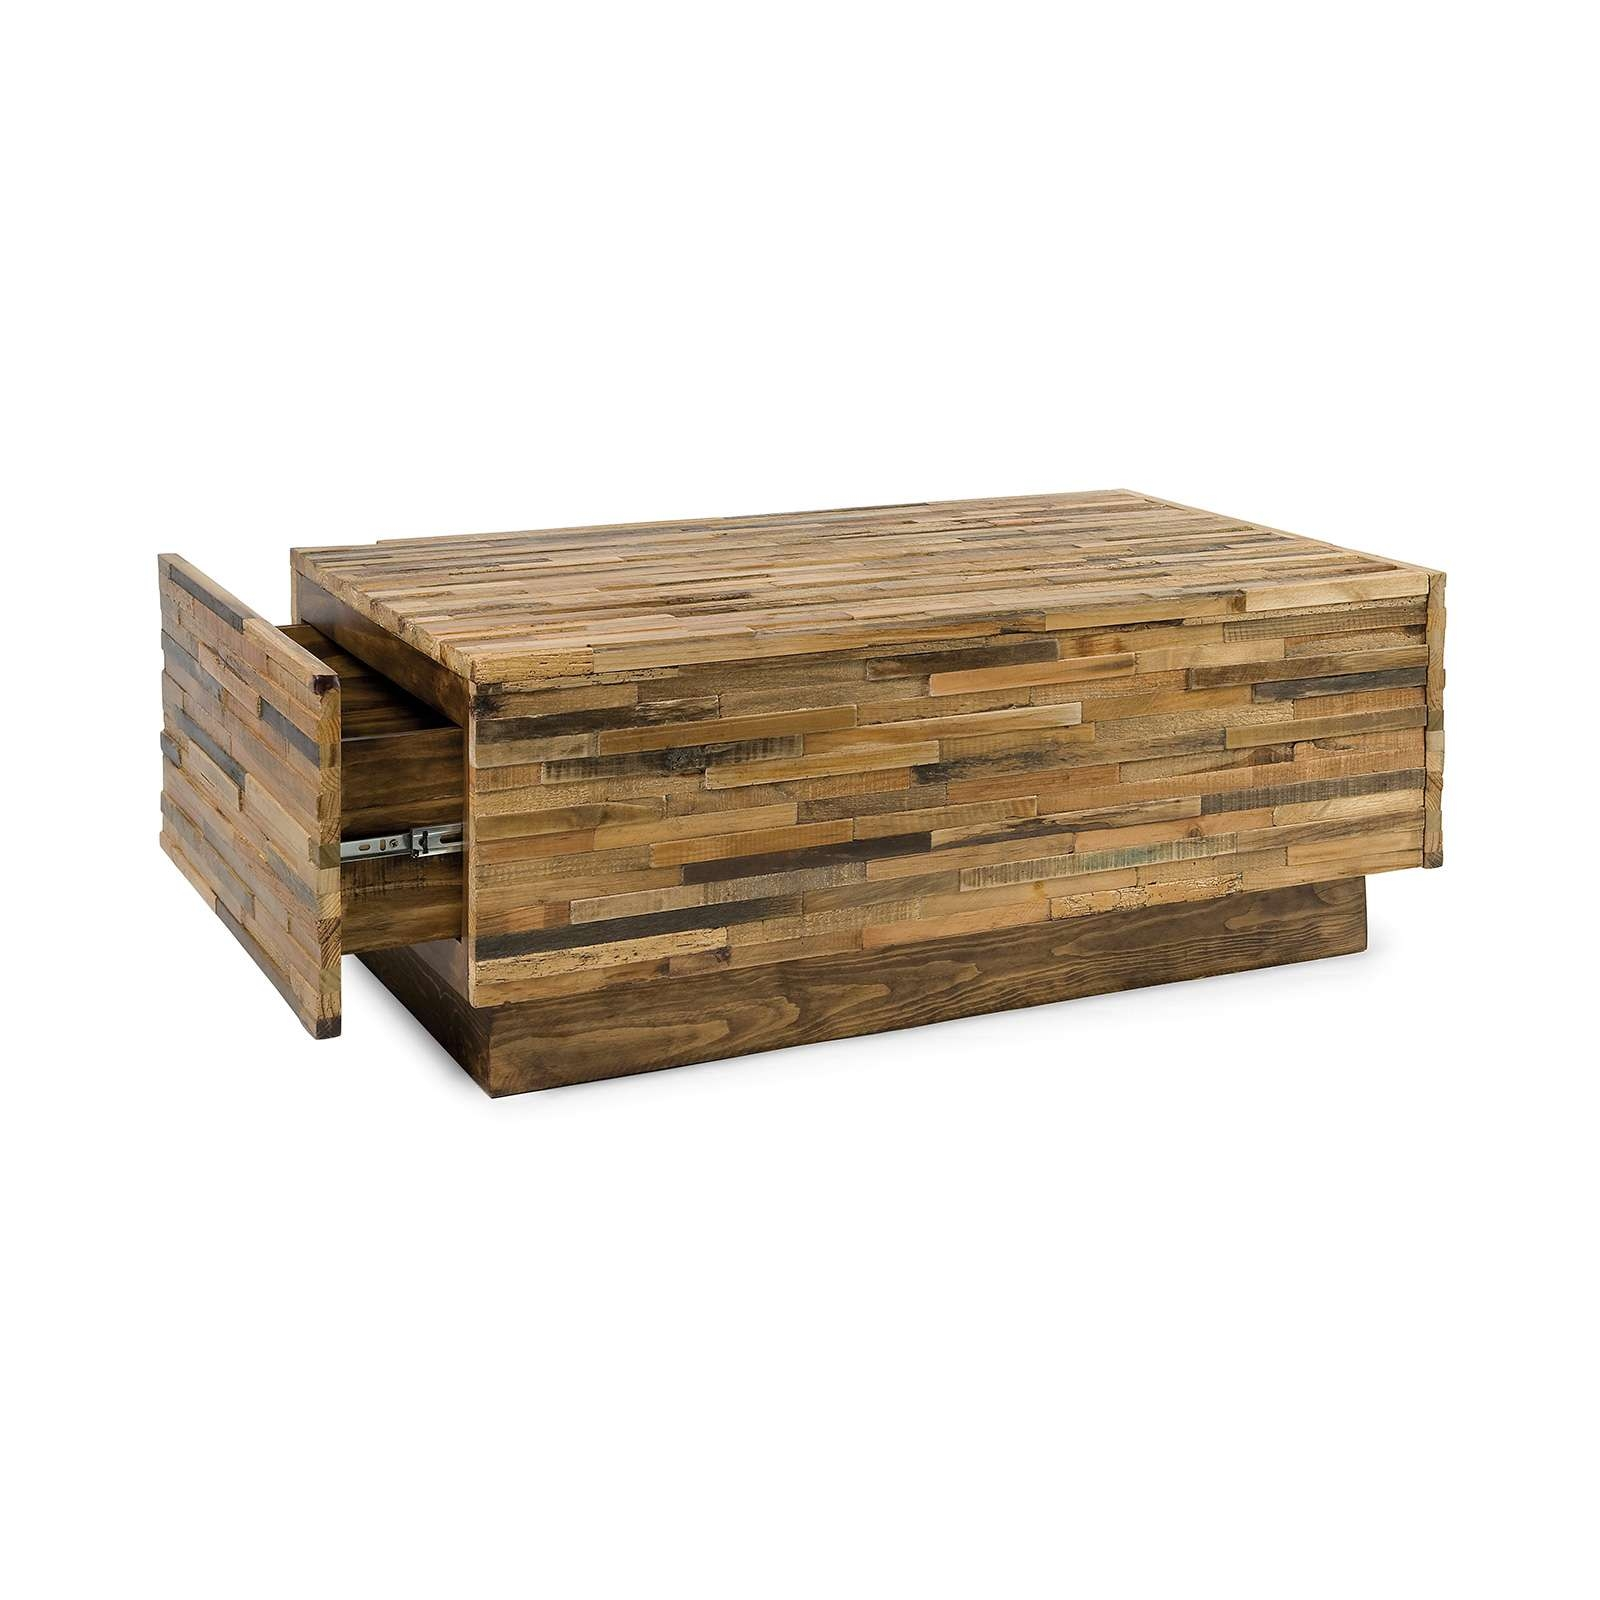 Most Current Rustic Coffee Table Drawers Regarding Coffee Table : Amazing Farm Style Coffee Table Reclaimed Wood (View 12 of 20)